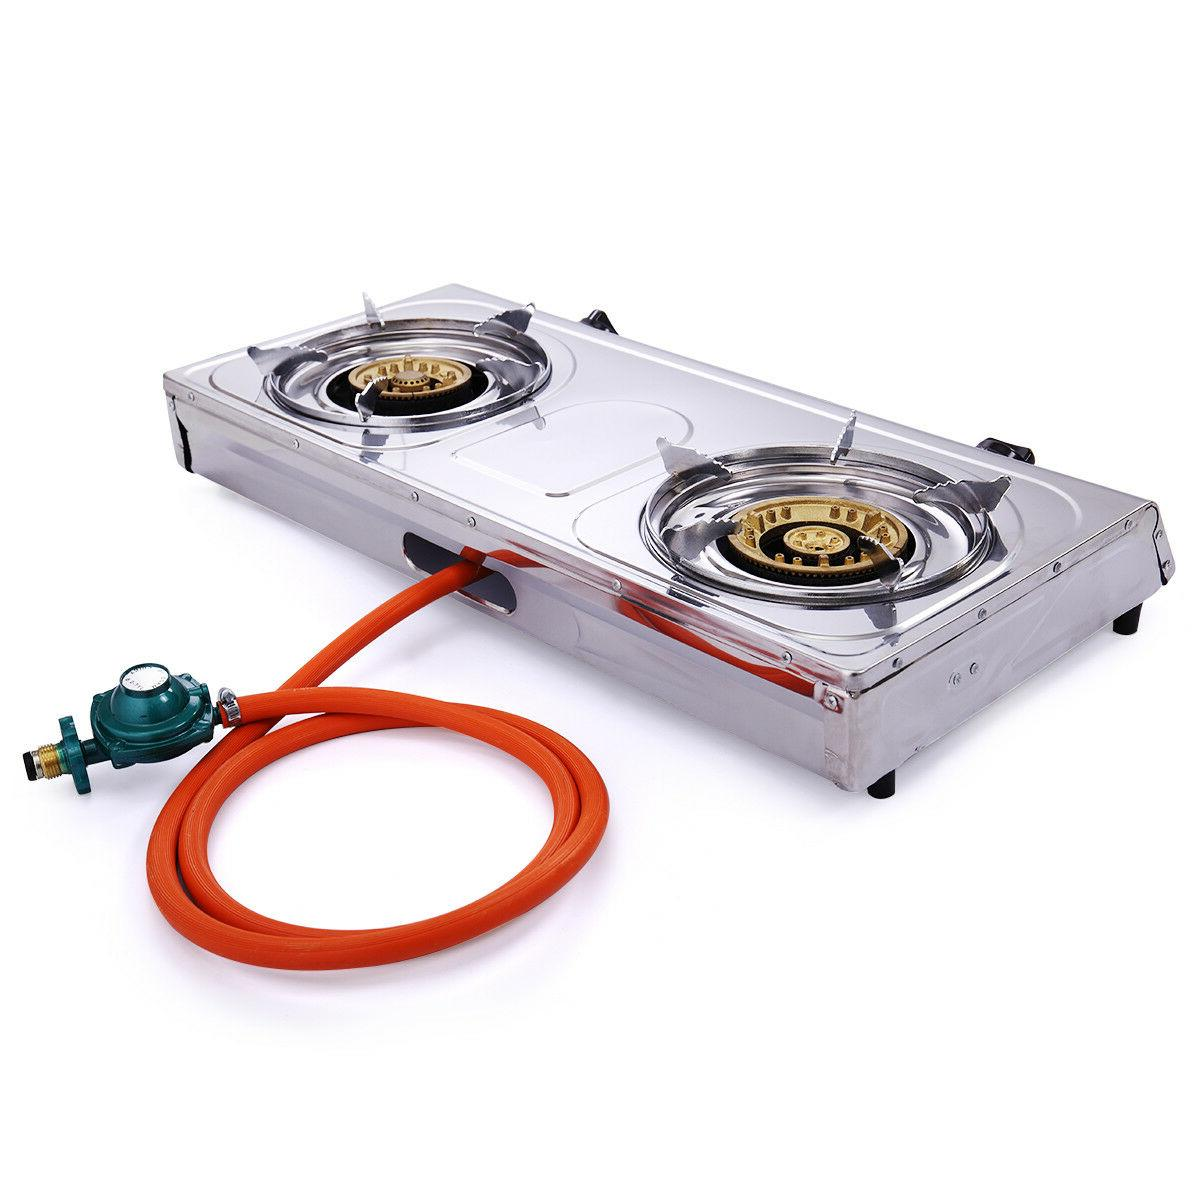 Stainless Gas, Portable Gas Stove